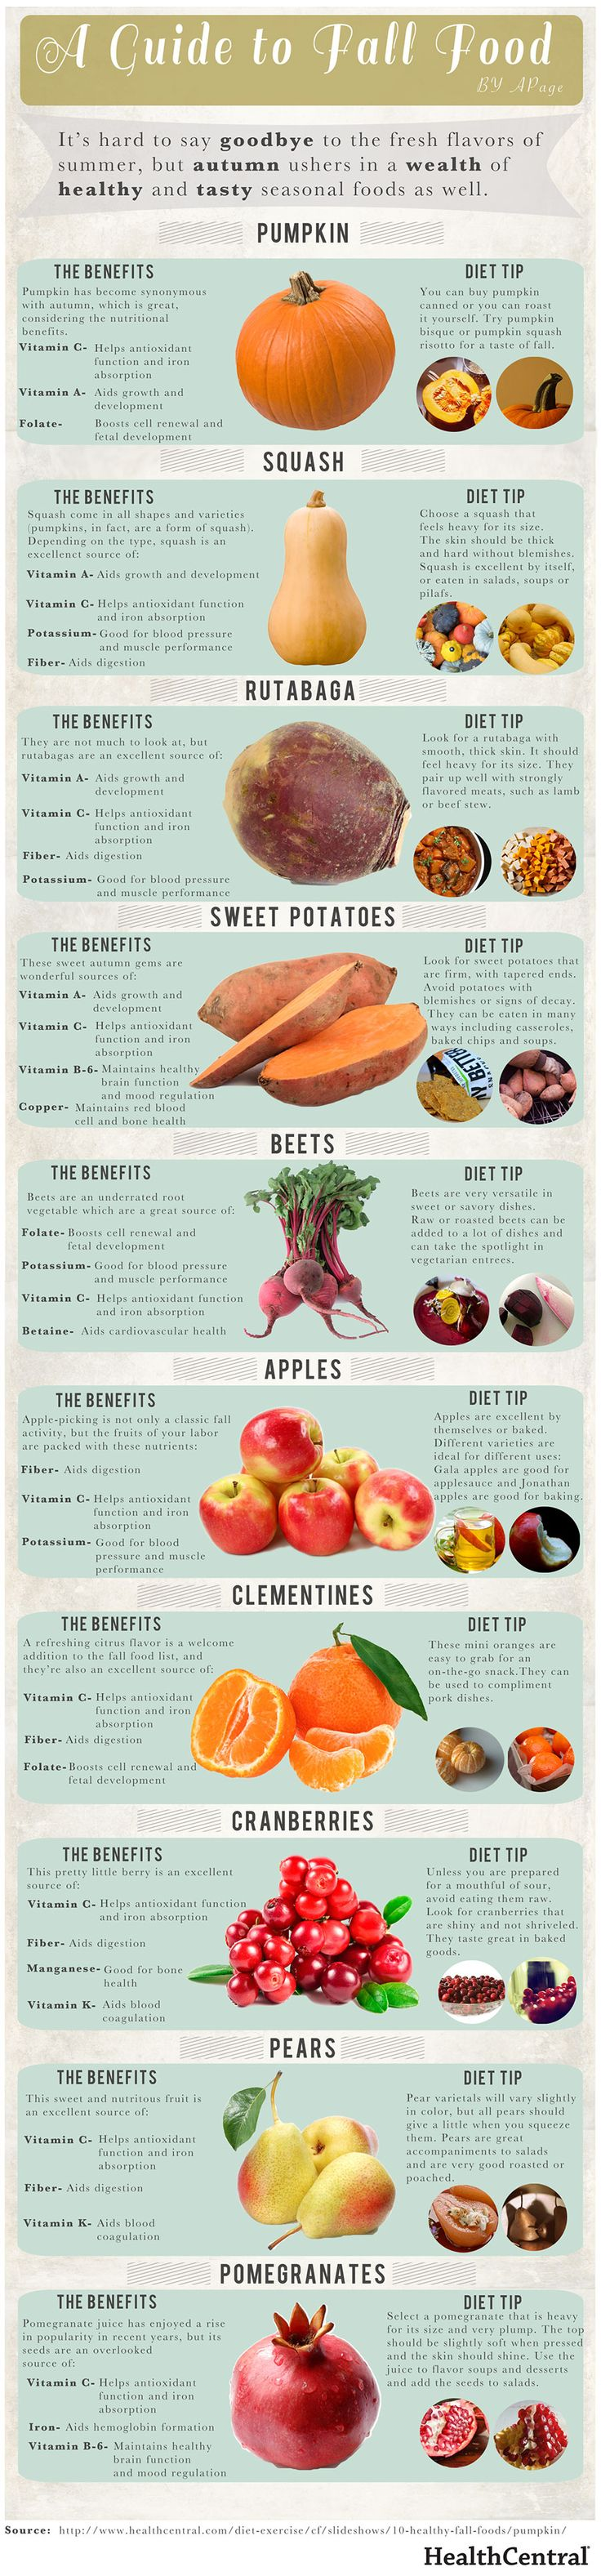 A Guide To Fall Food Infographic